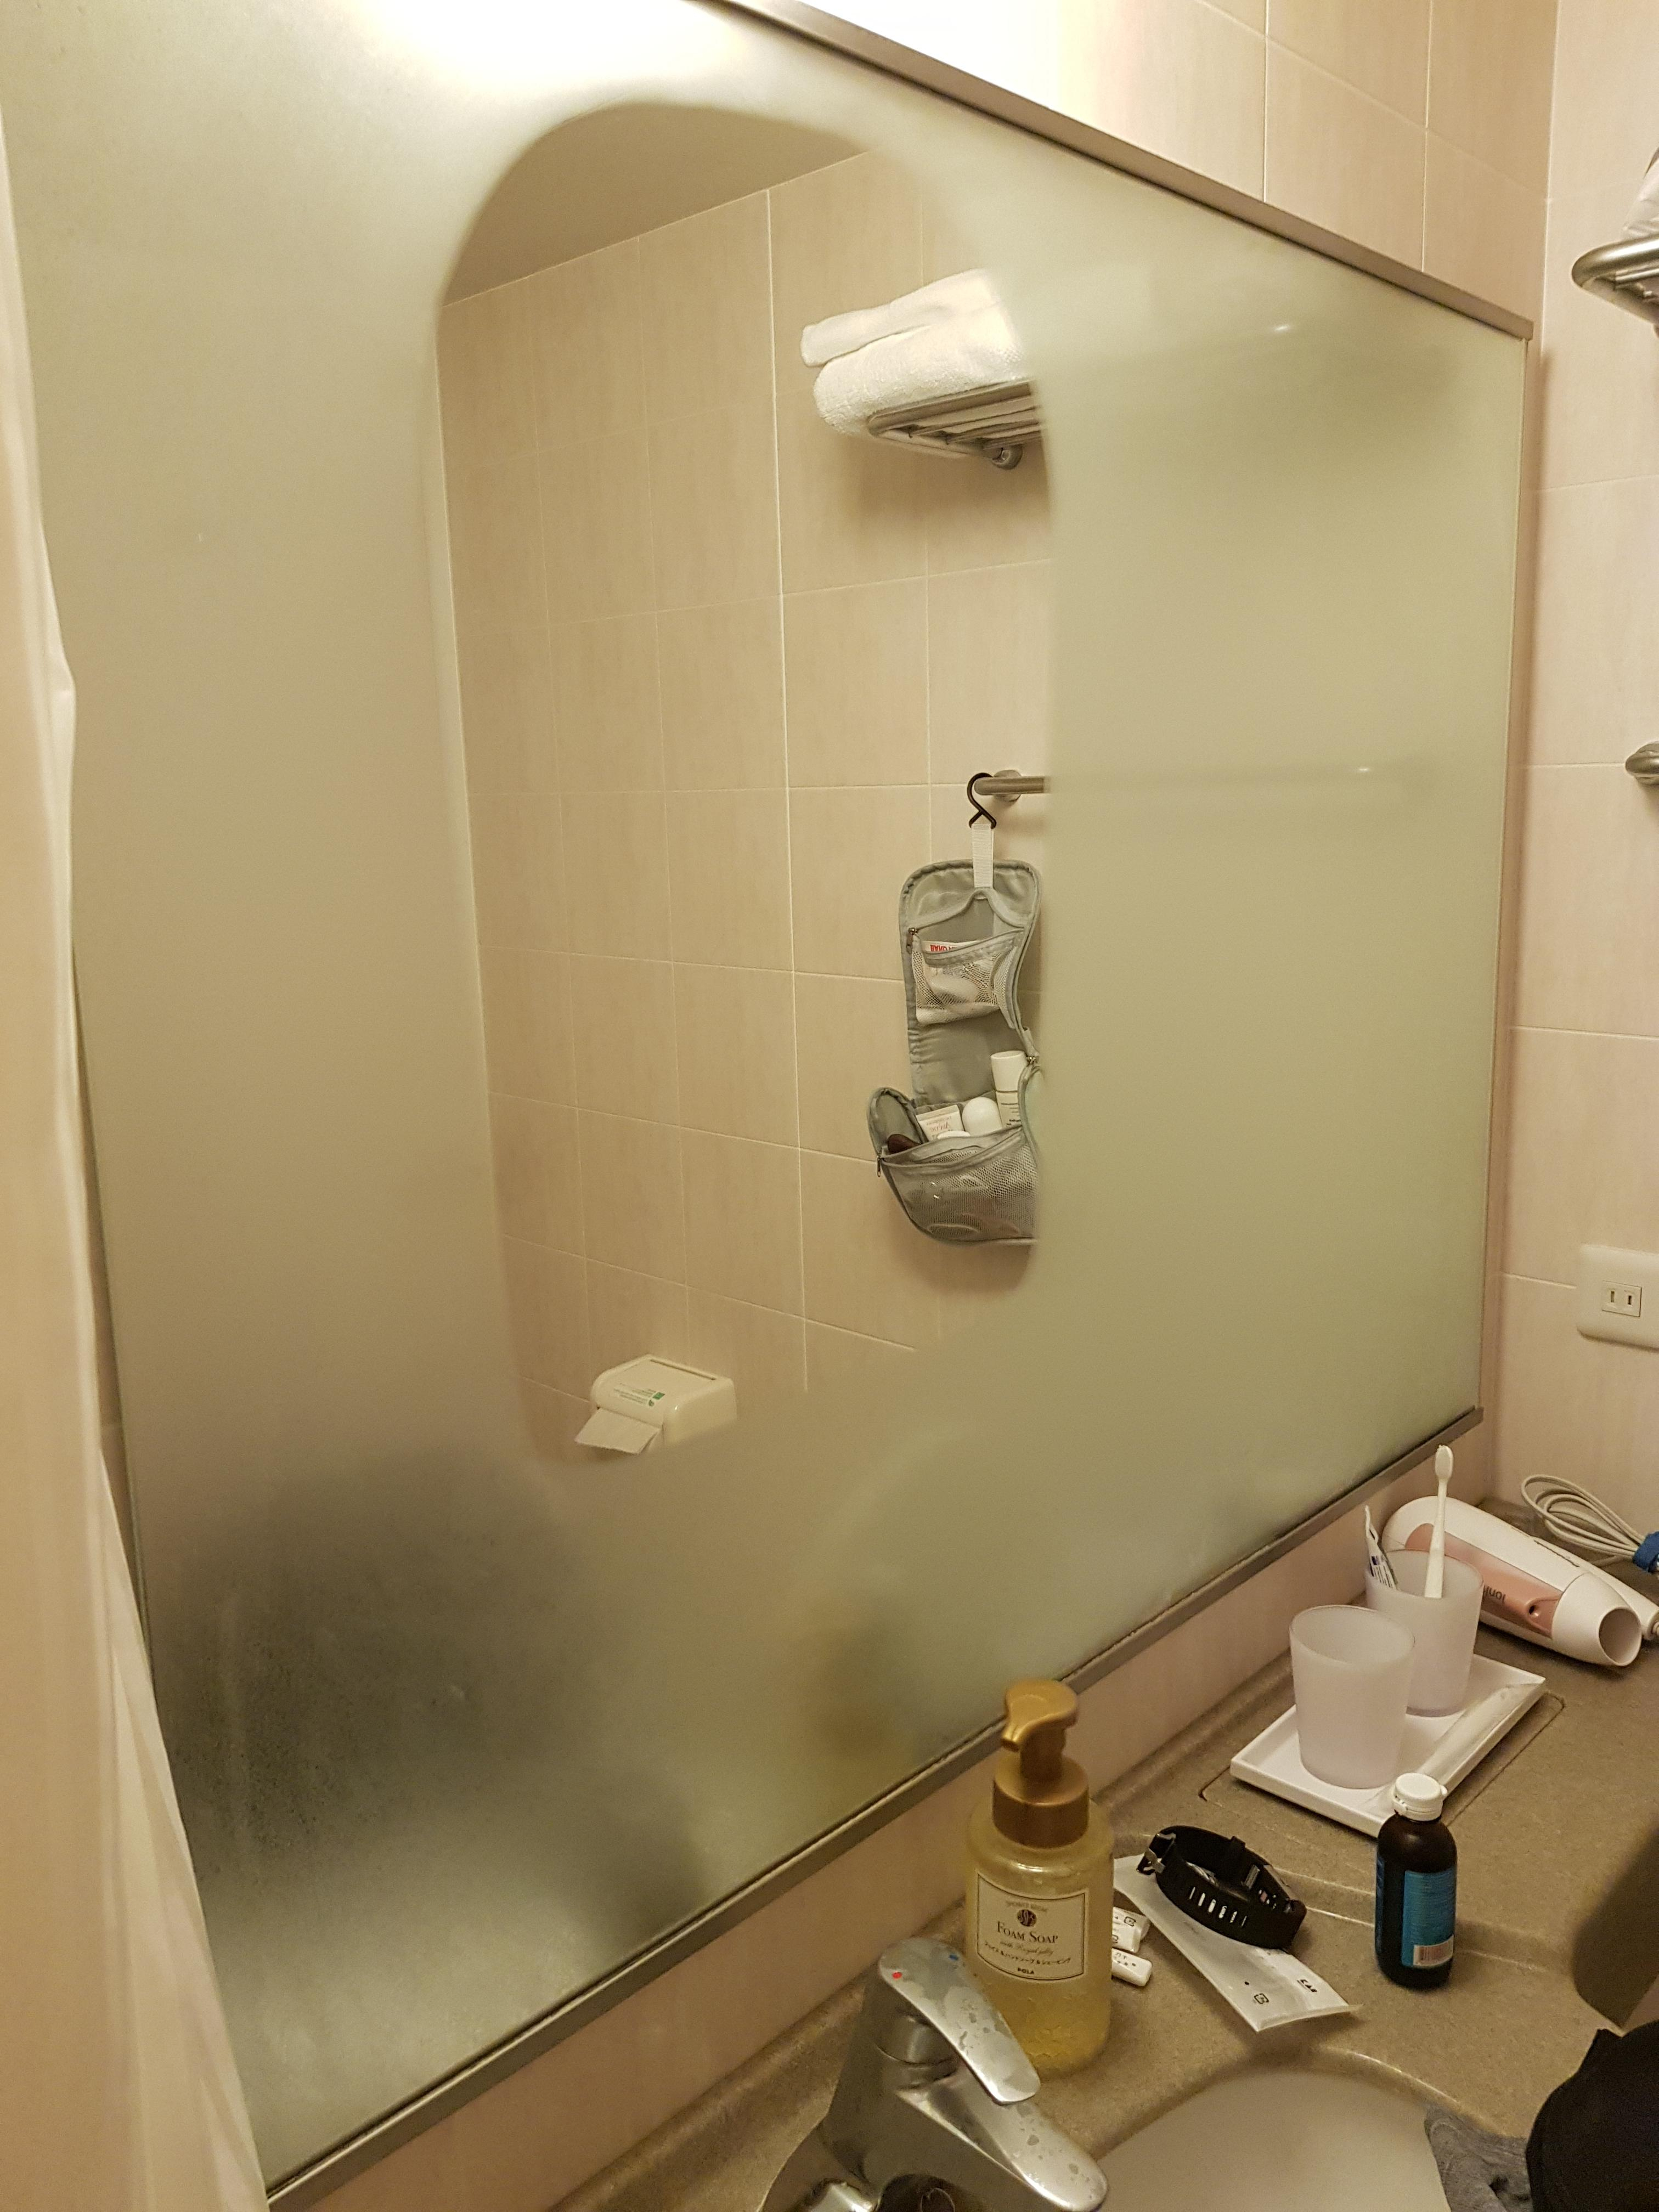 The Bathroom Mirror In My Hotel In Japan Has A Steam in sizing 3024 X 4032